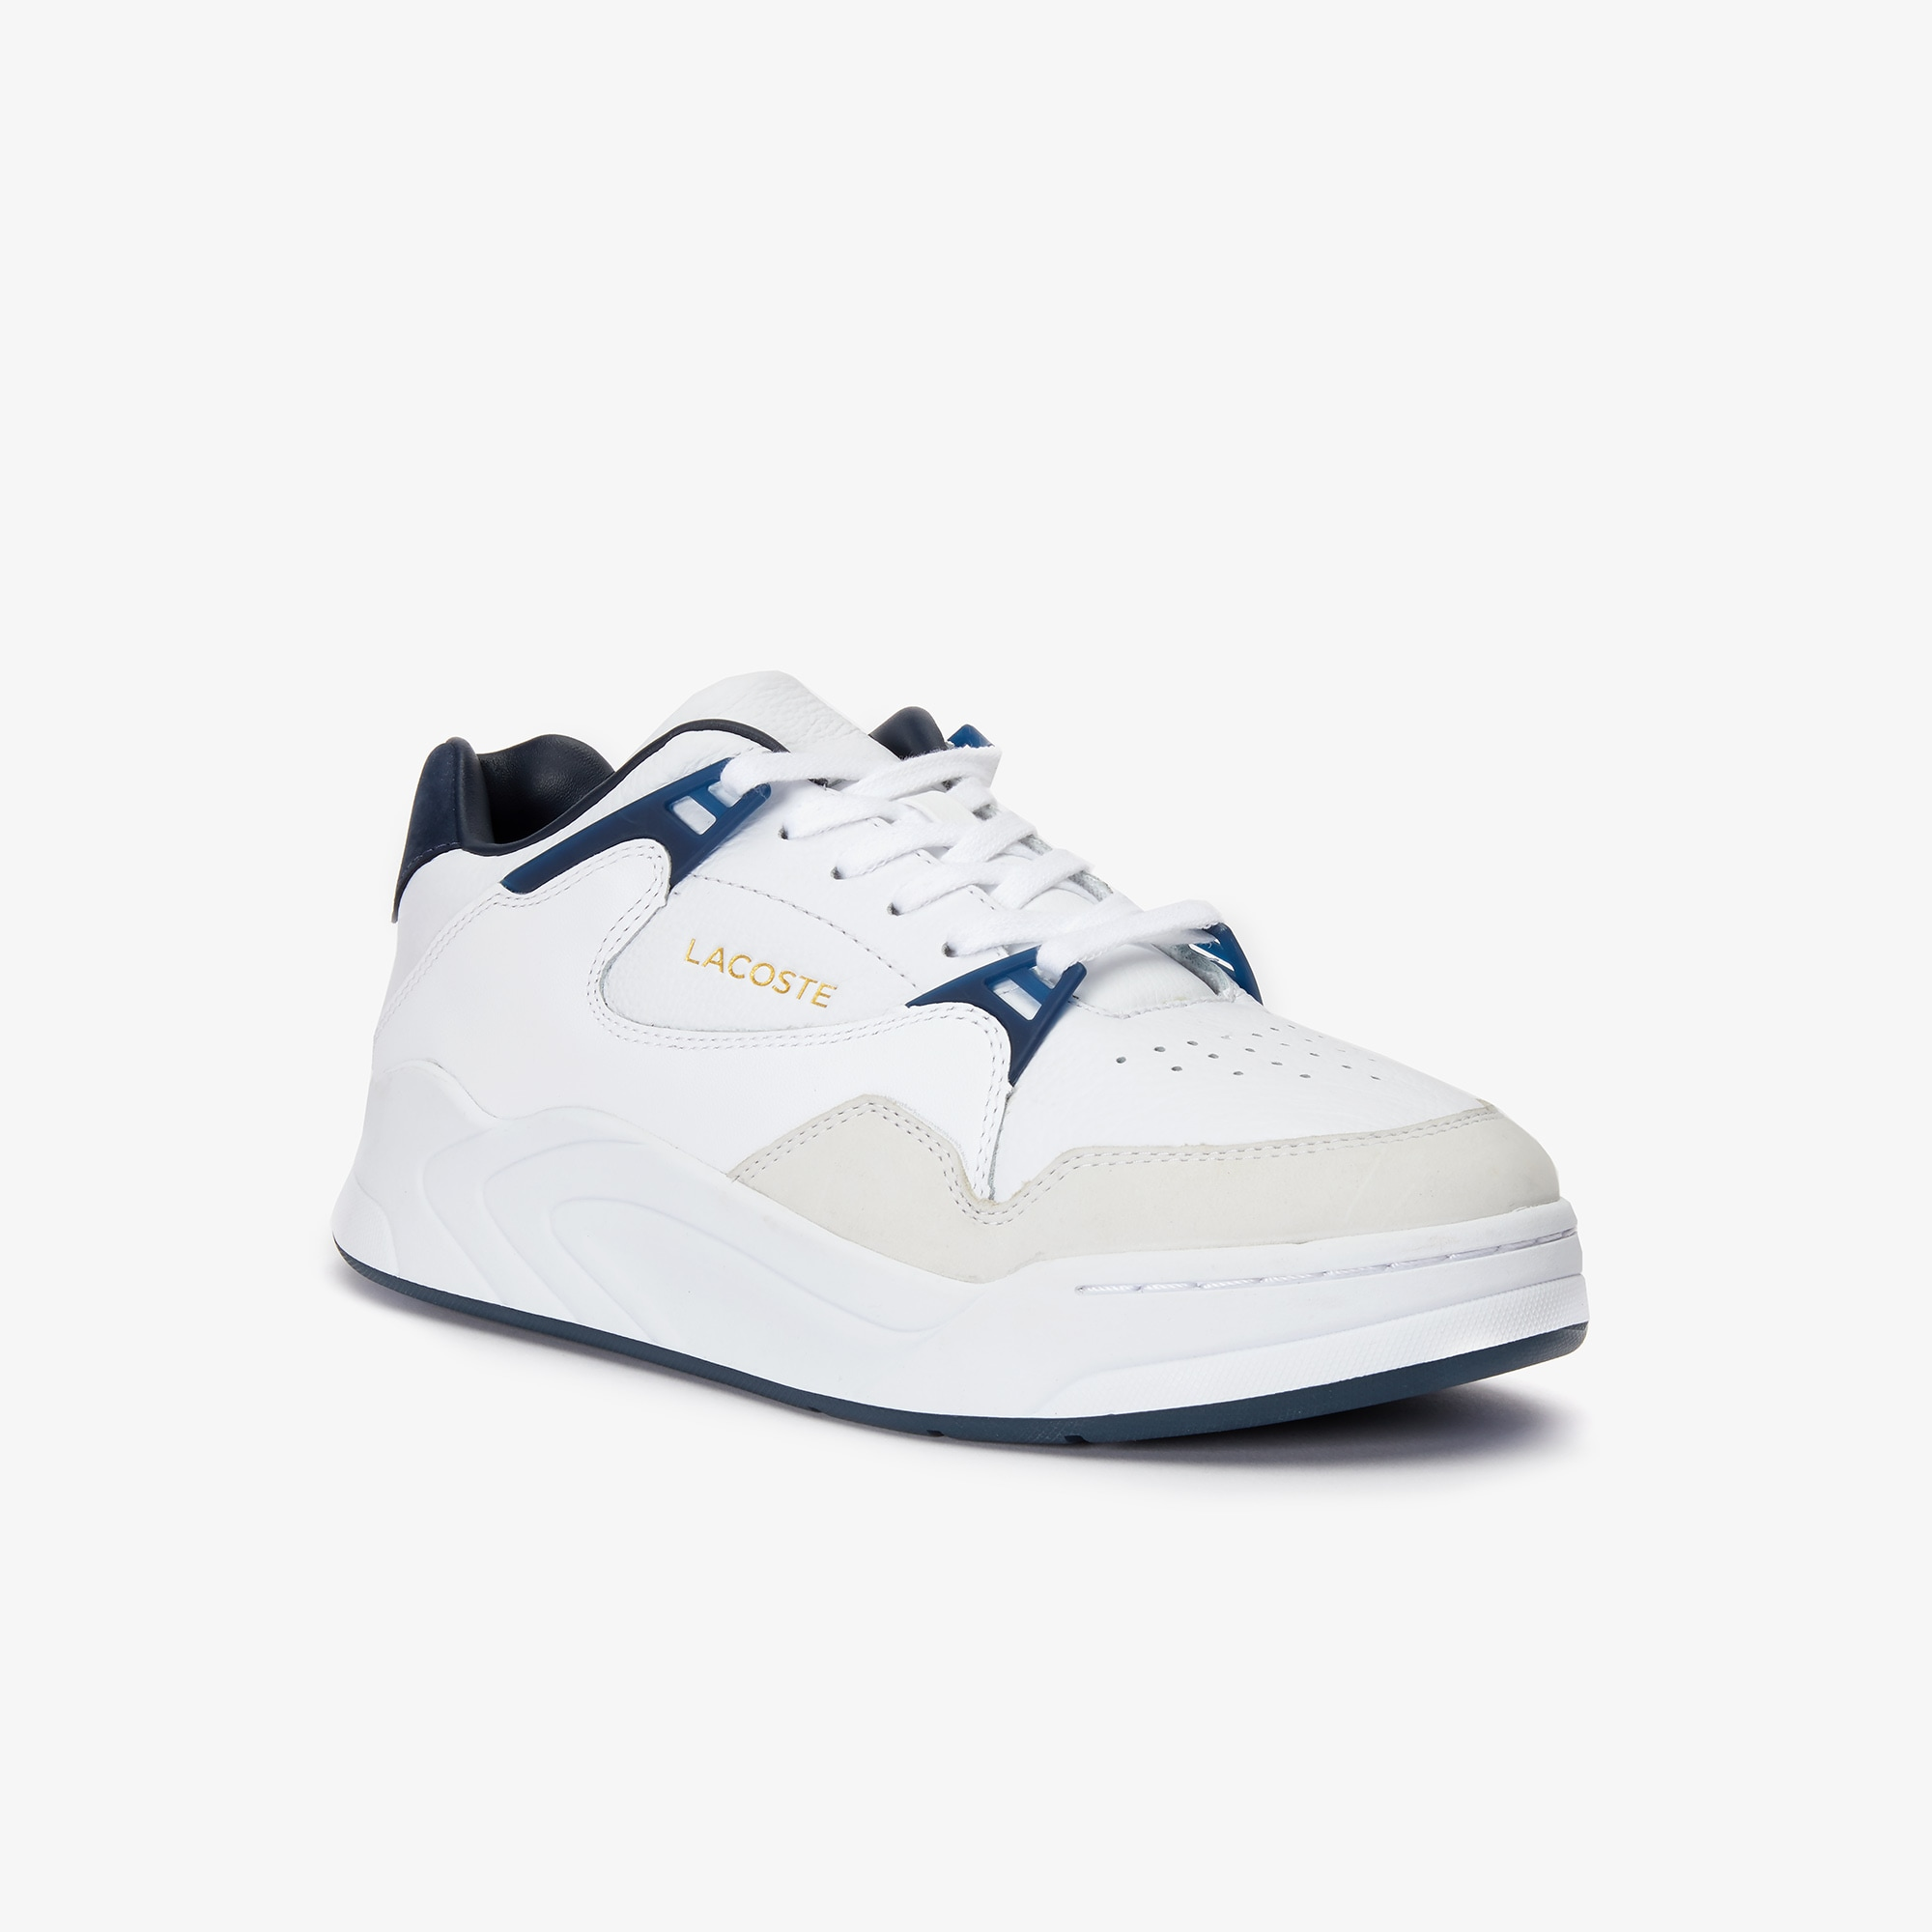 Lacoste Sneakers Men's Court Slam Two-Tone Leather Sneakers